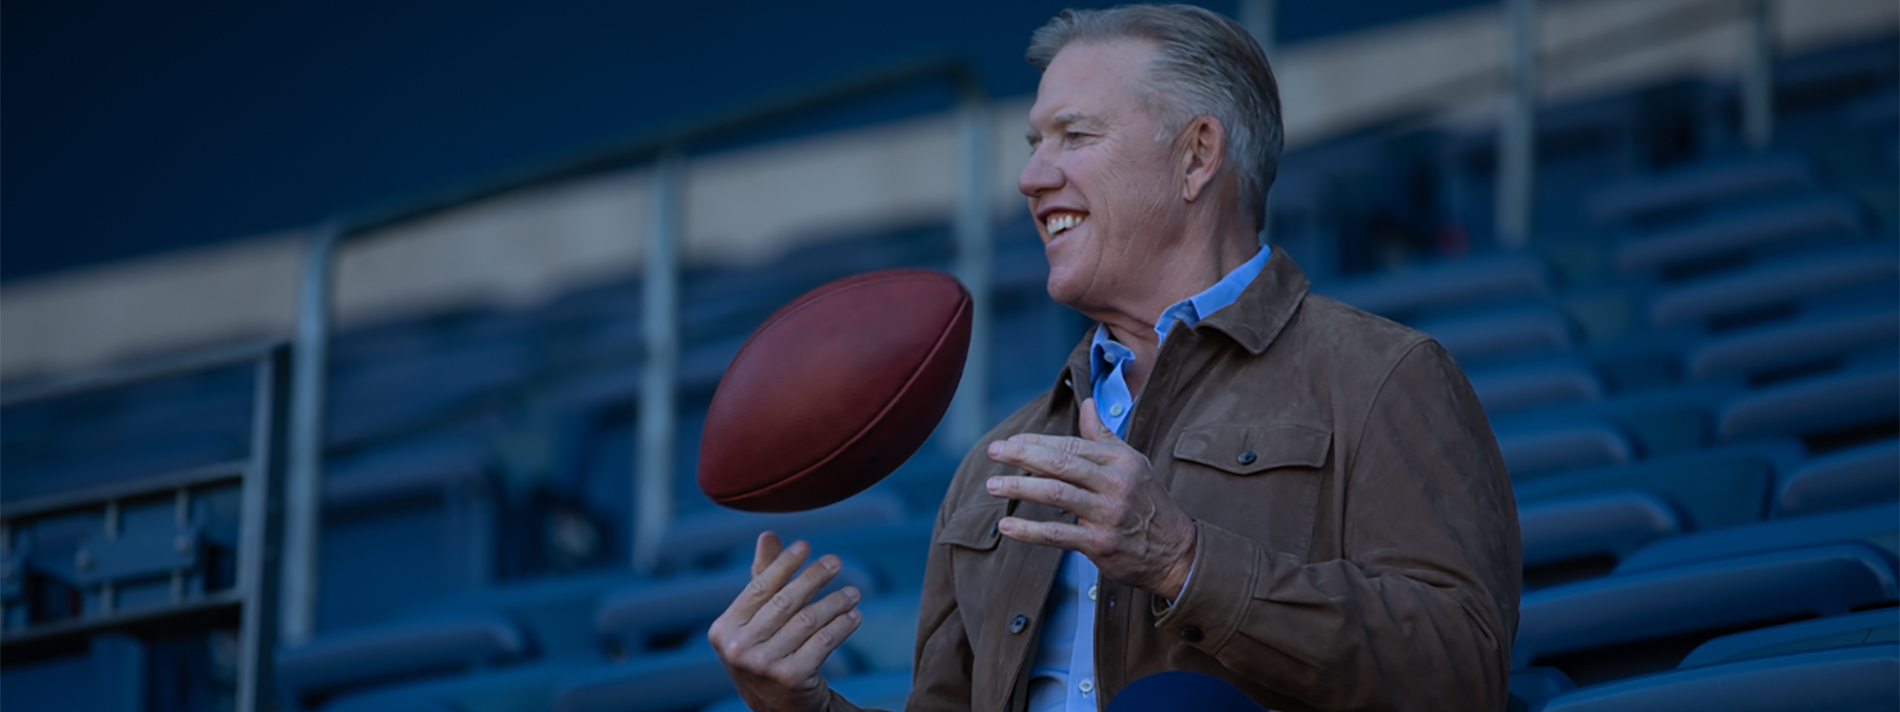 Elway with a football